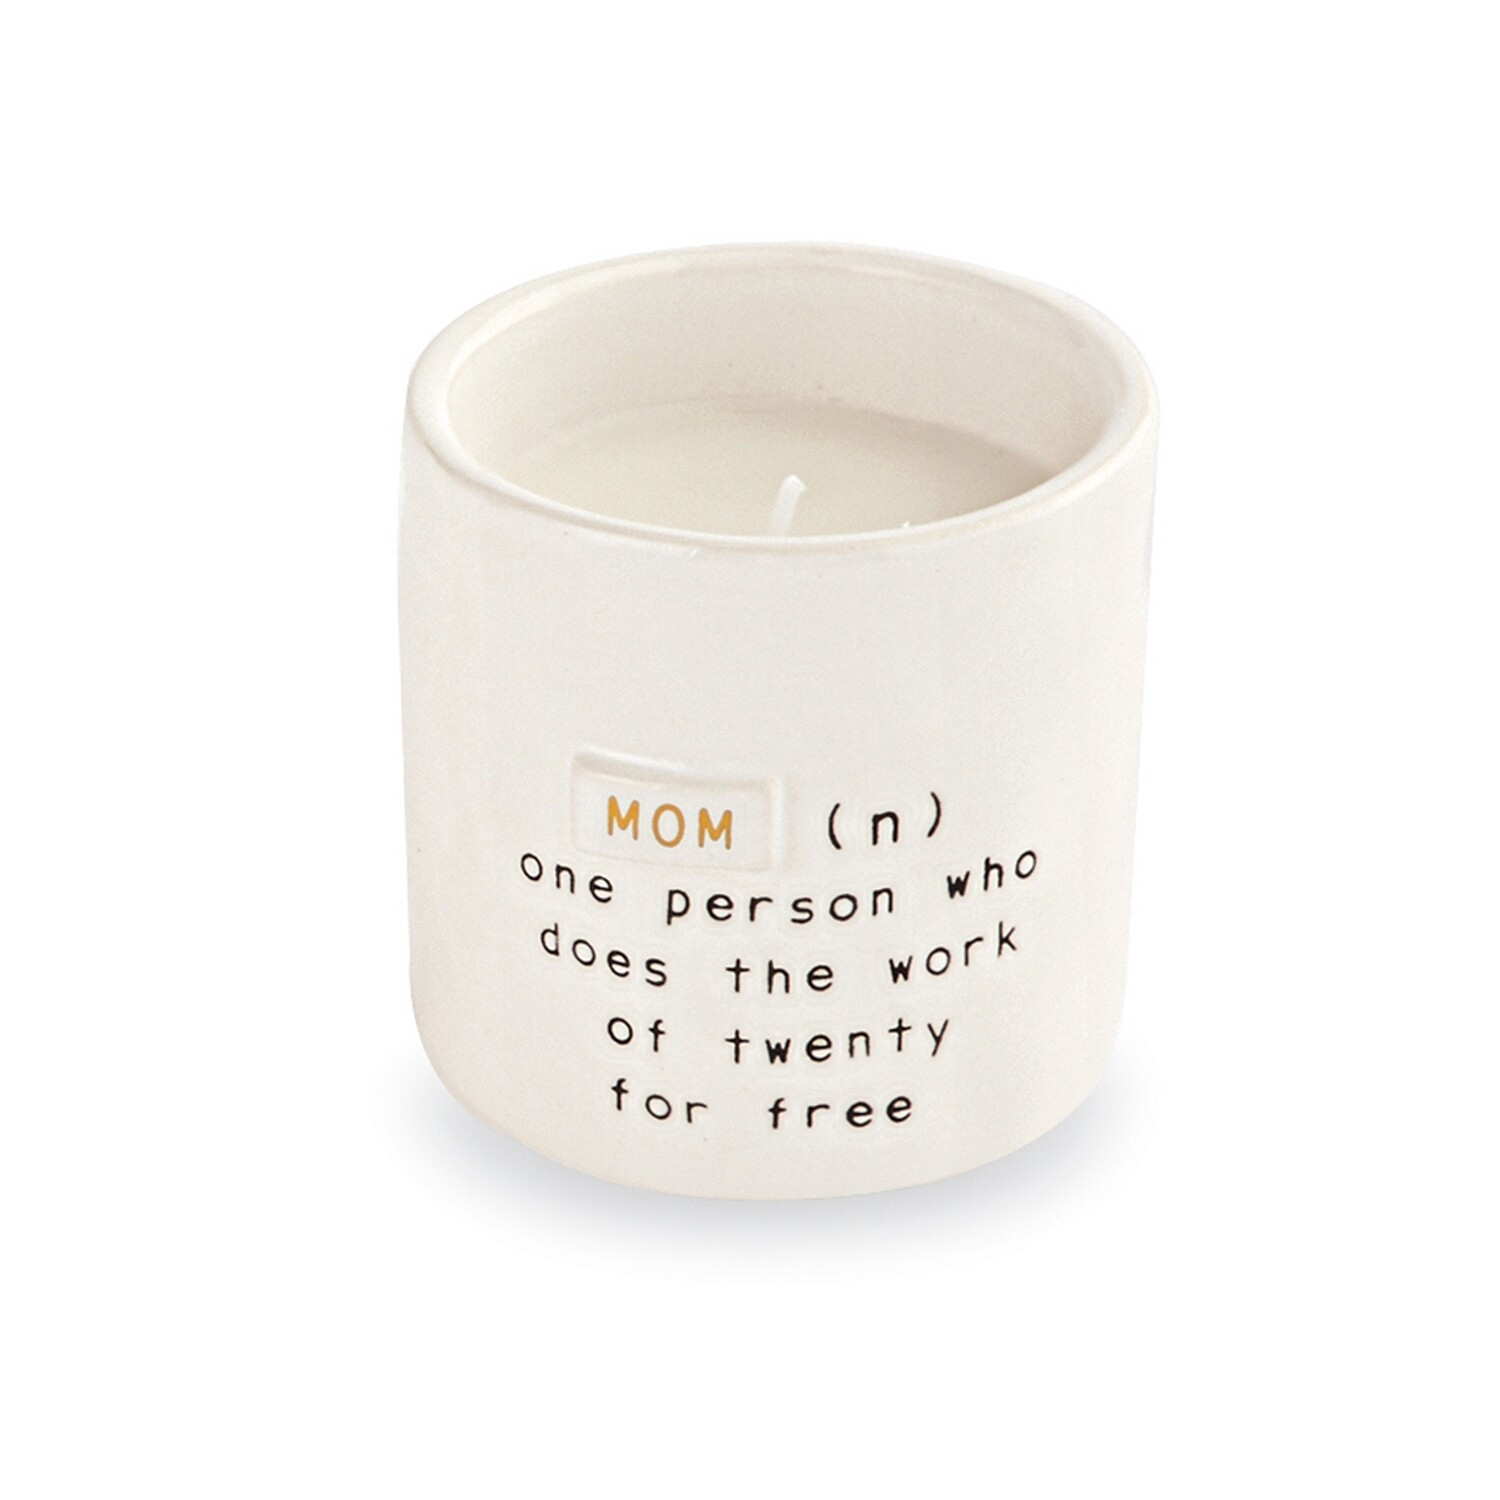 MP Mom boxed candle - work